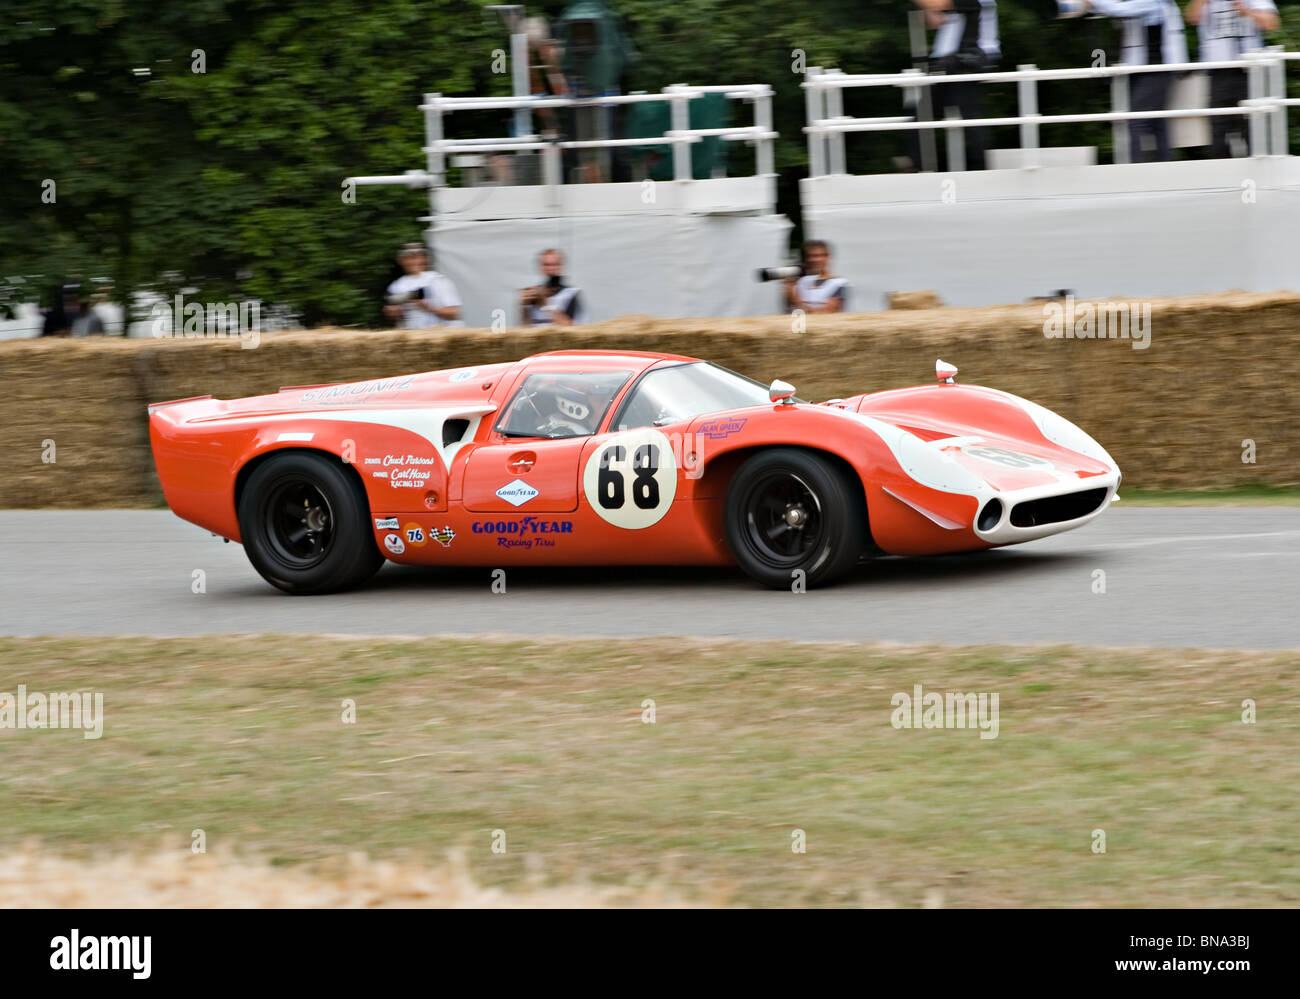 You are here shop home gt gt categories gt gt motorsport gt gt goodwood -  Home Gt Gt Categories Gt Gt Motorsport Gt Gt Goodwood Can Download